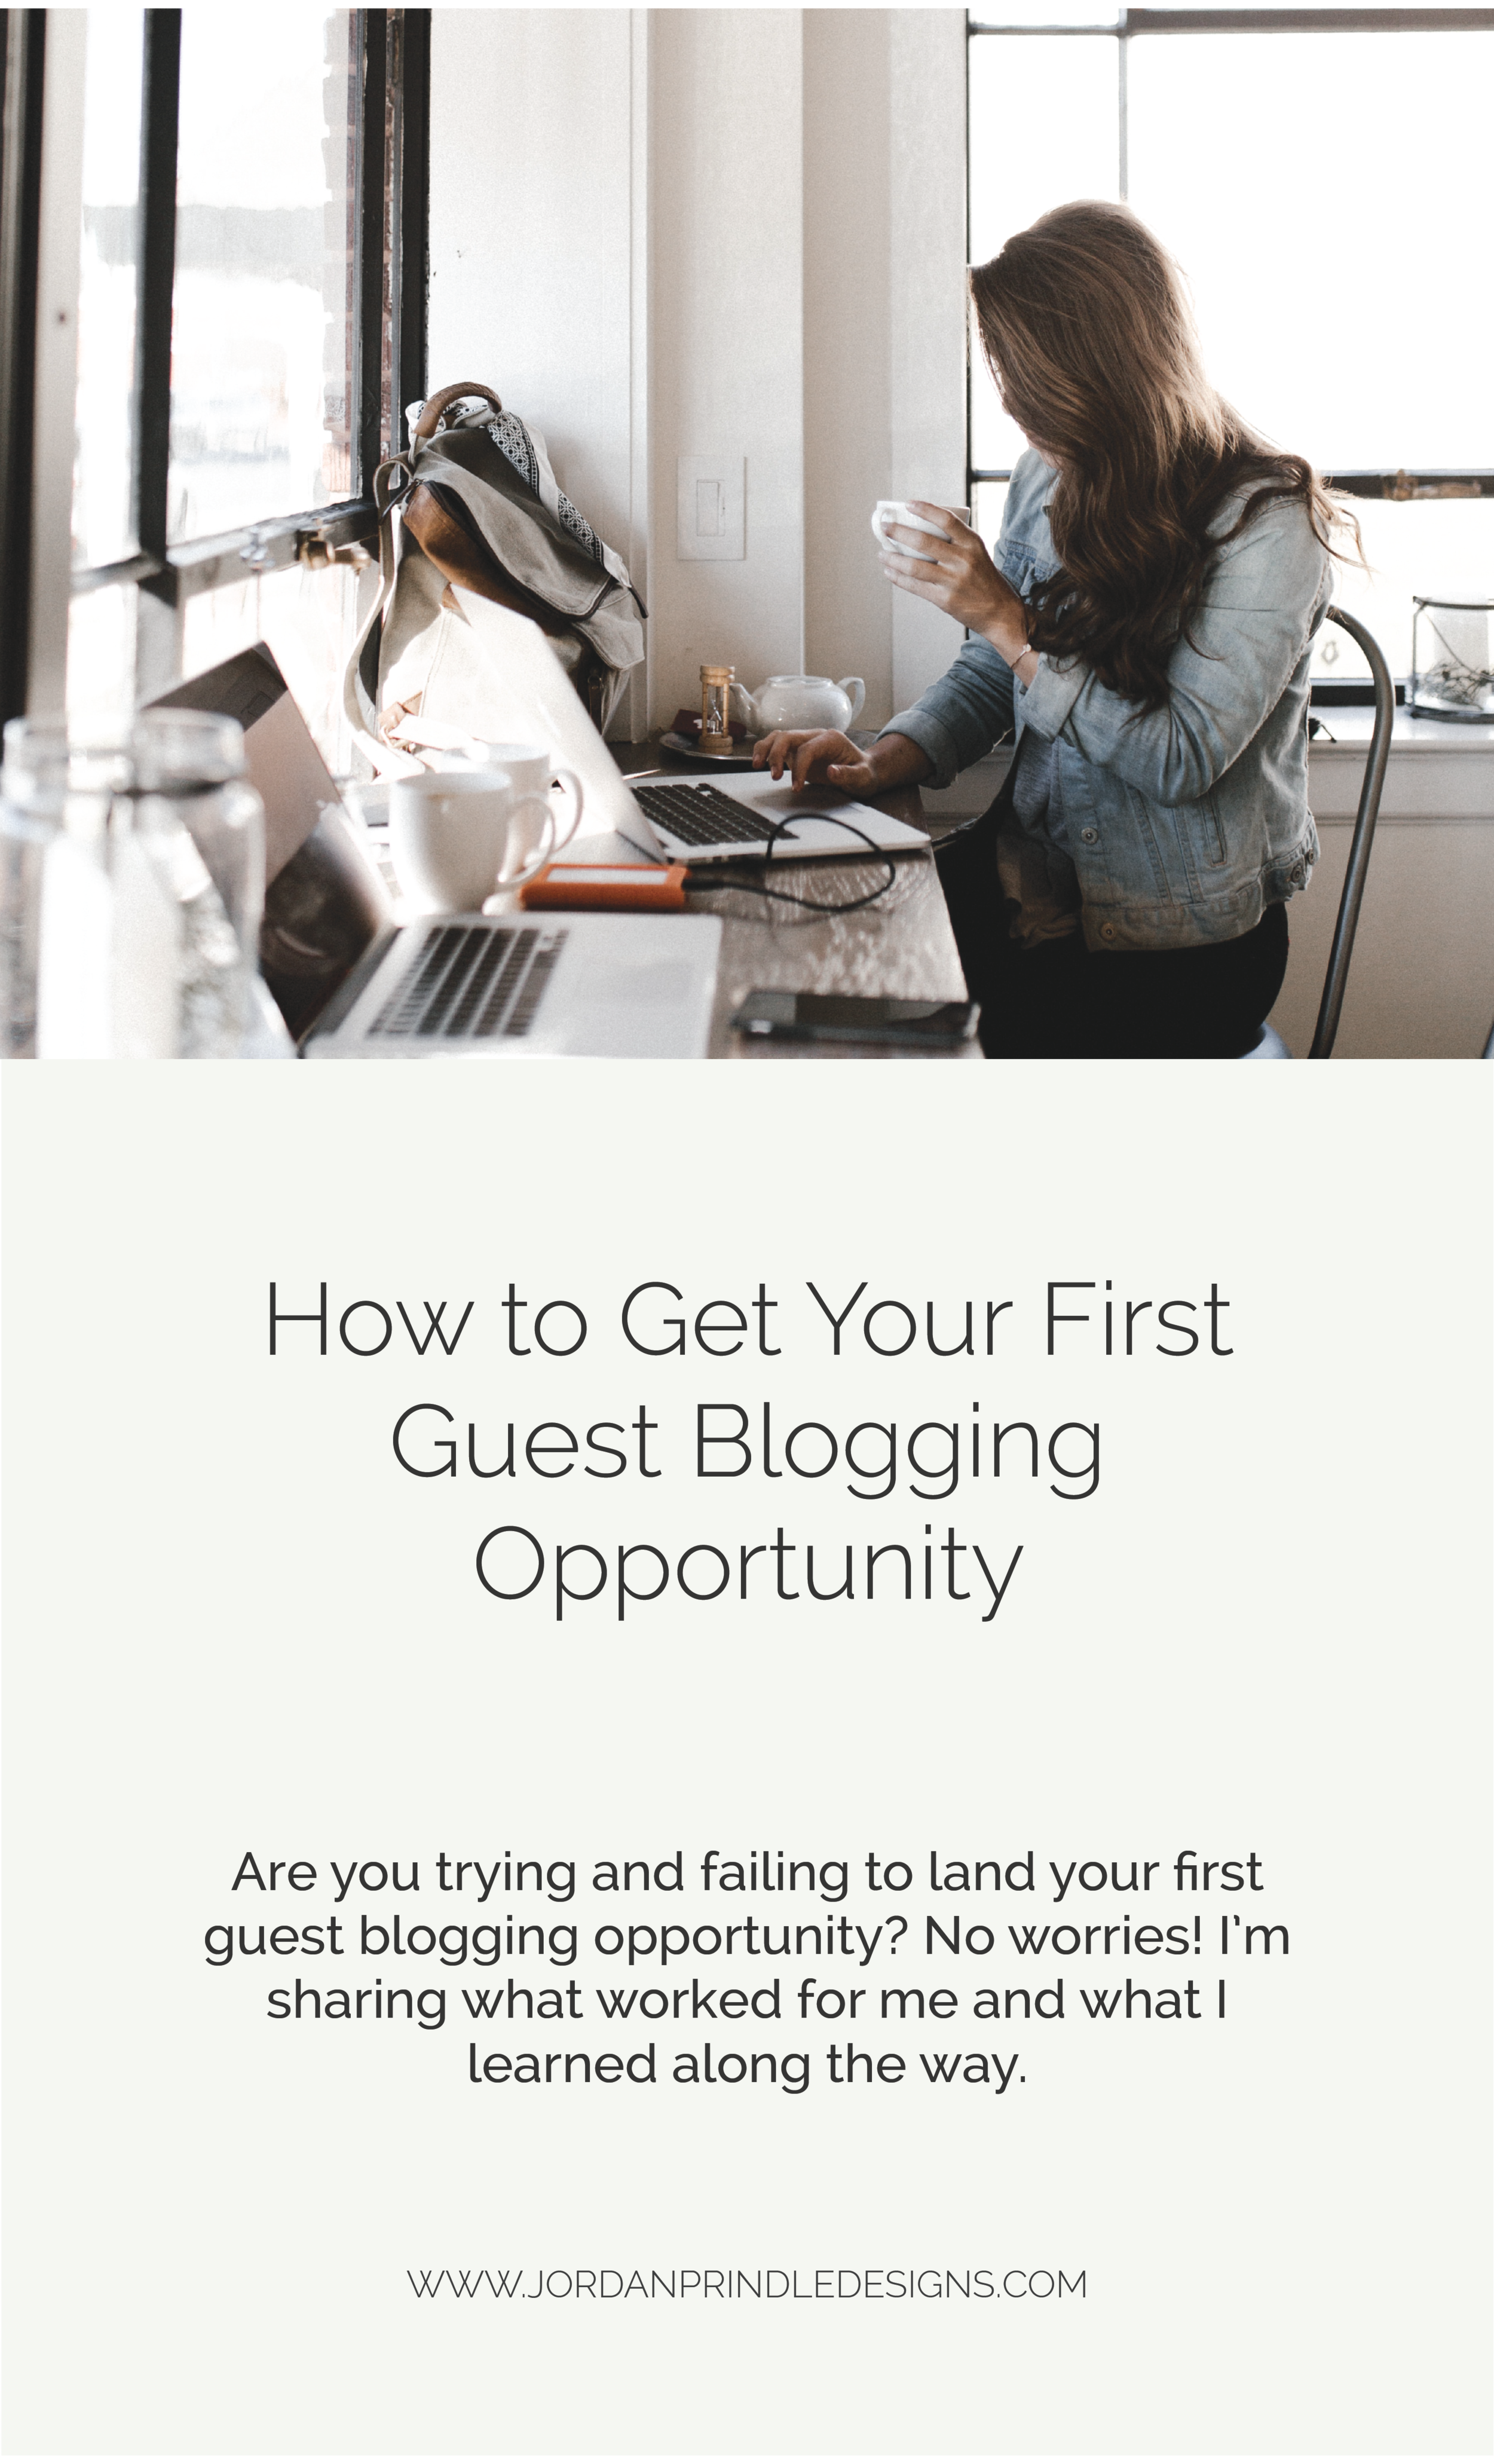 How to Get Your First Guest Blogging Opportunity | Have you struggled to promote your business? This new blog post details how to #marketyourbusiness and create #personalconnections to highlight your business. Keep reading at www.jordanprindledesigns.com #smallbiztips #blogging #guestblog